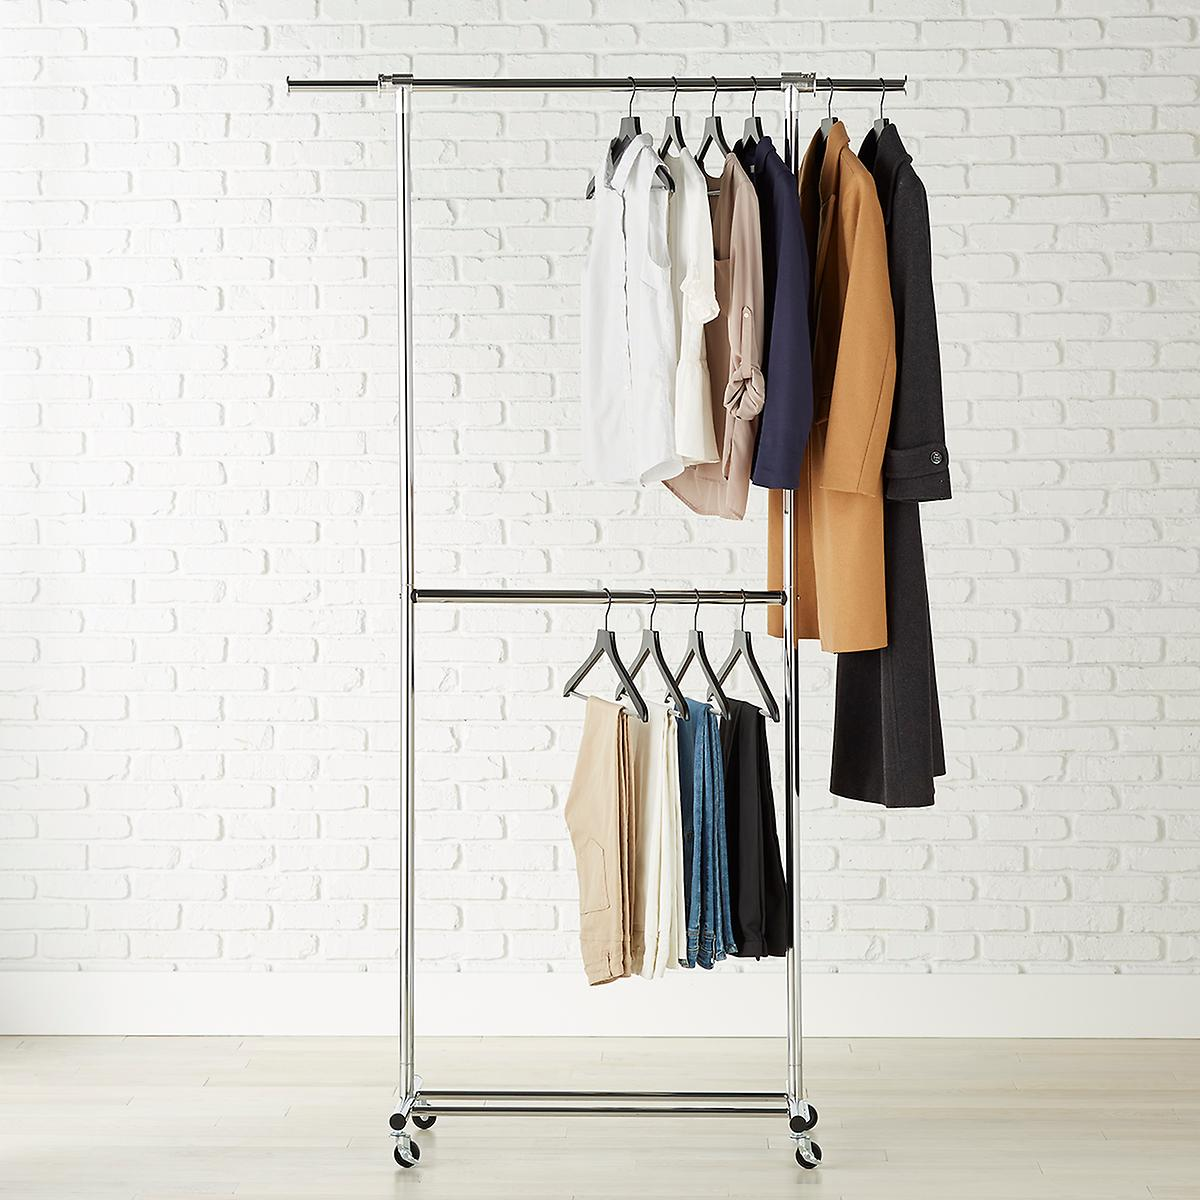 Garment Rack Manufacturers